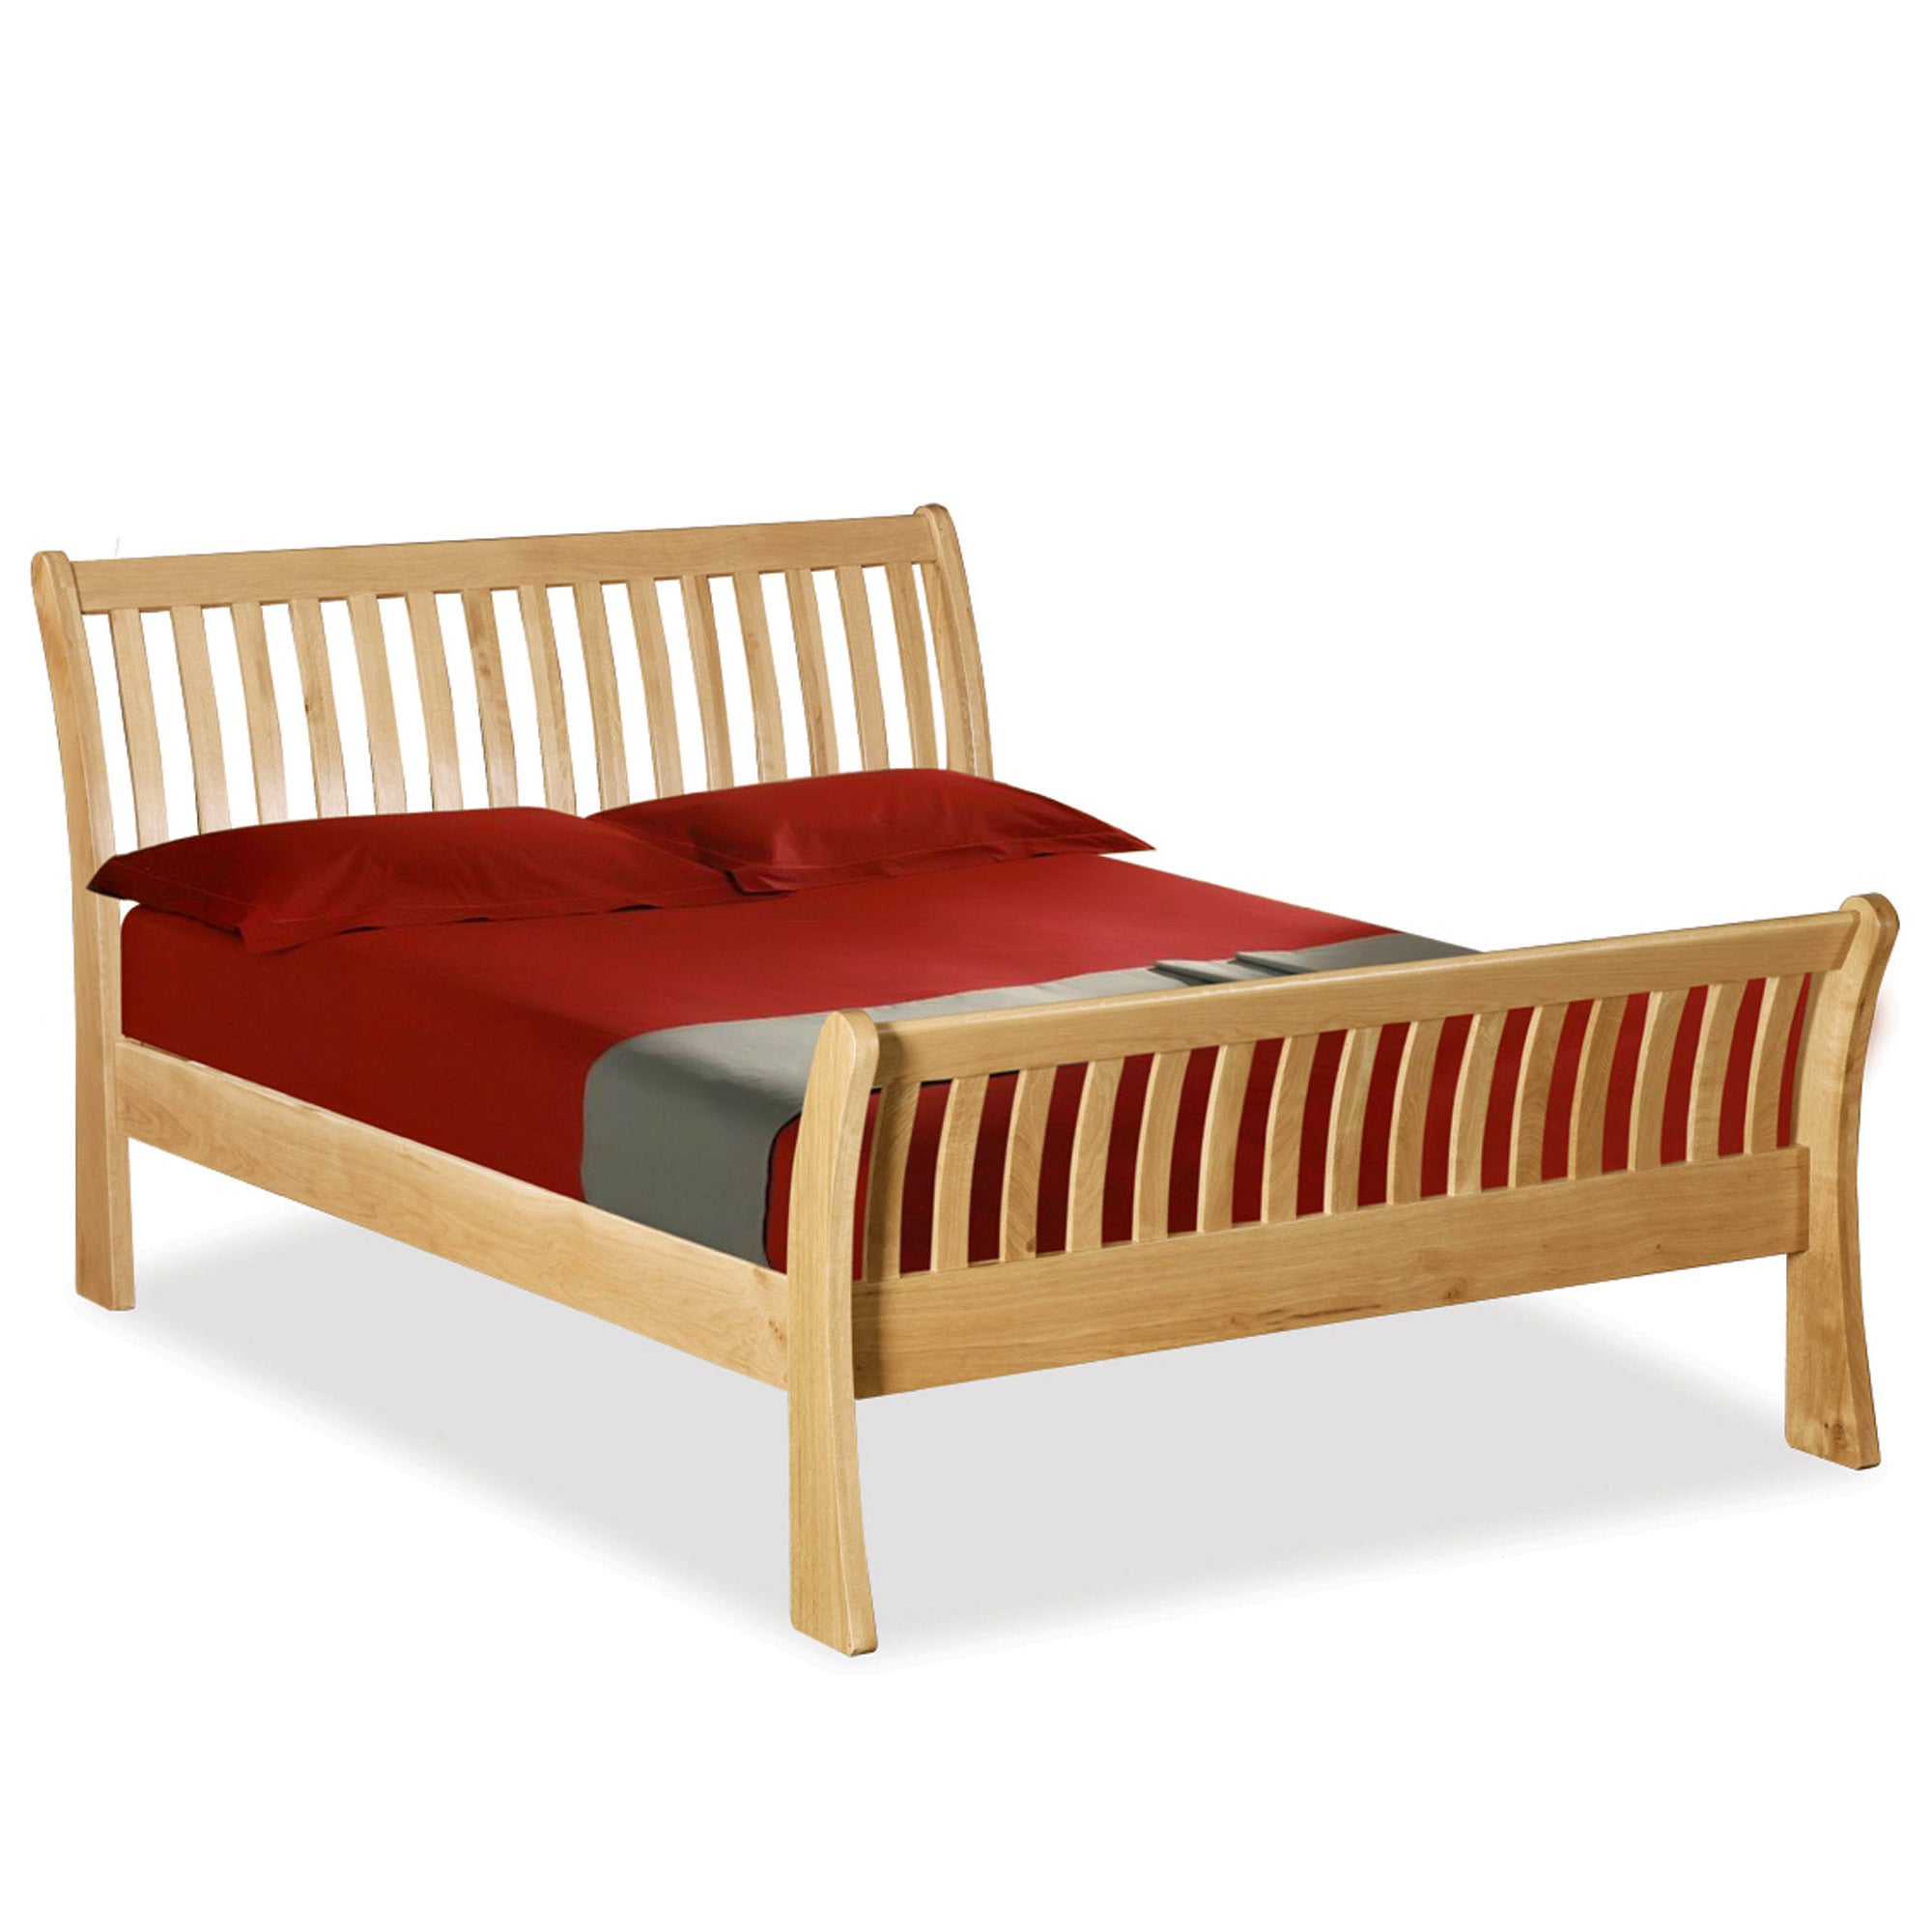 Buy Cheap Super King Size Oak Bed Frame Compare Beds